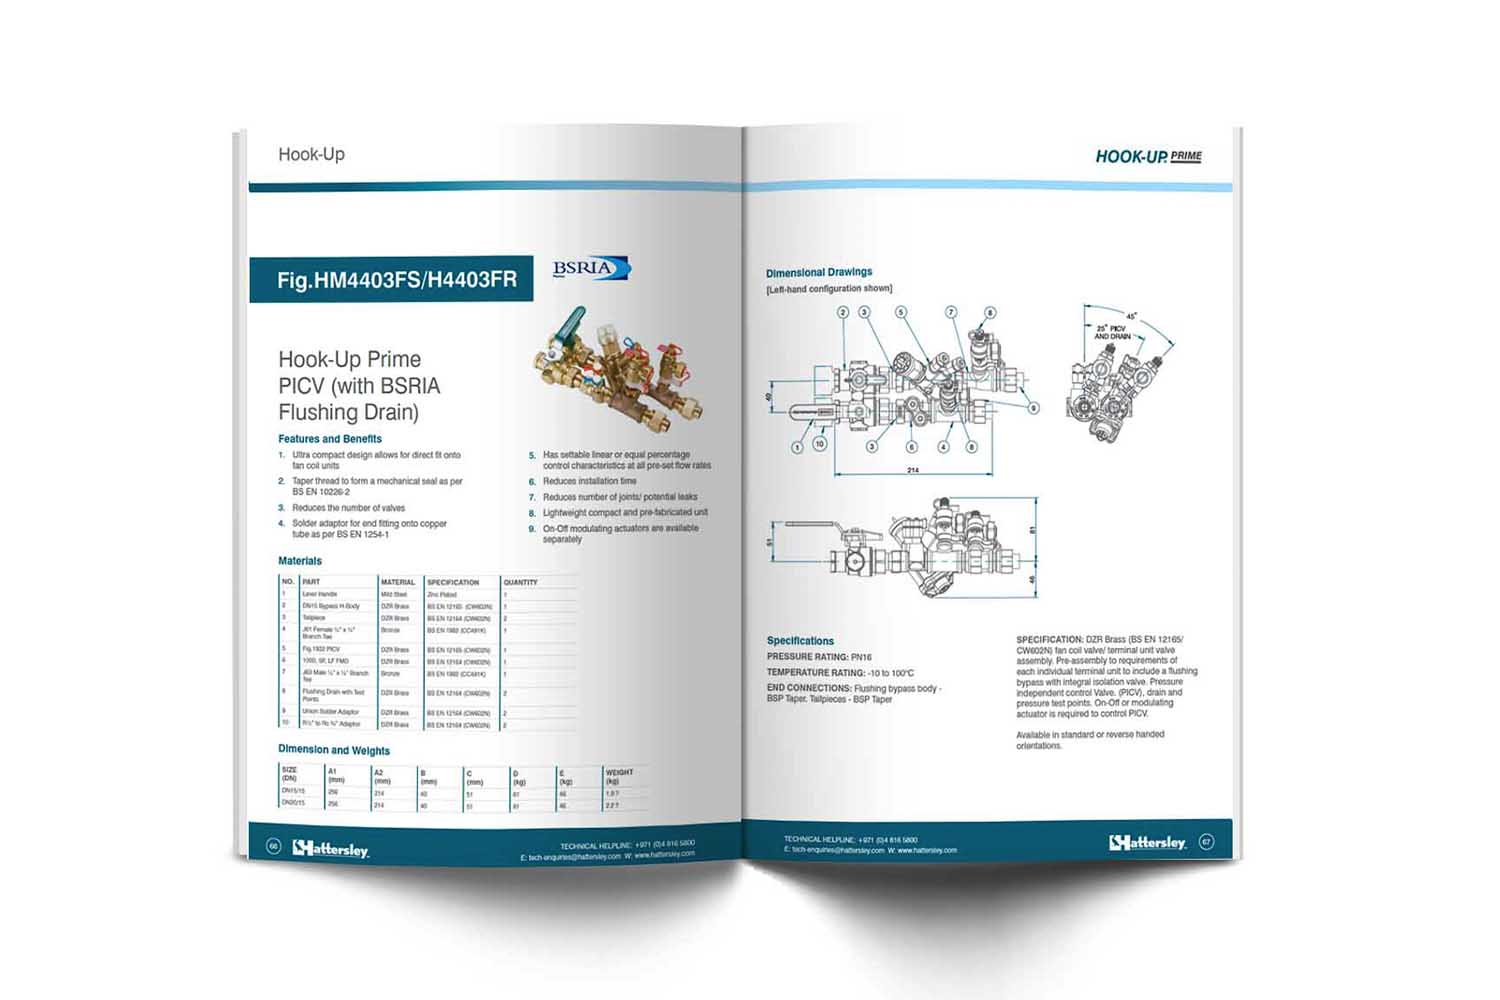 image of hattersley brochure product page redesign dubai